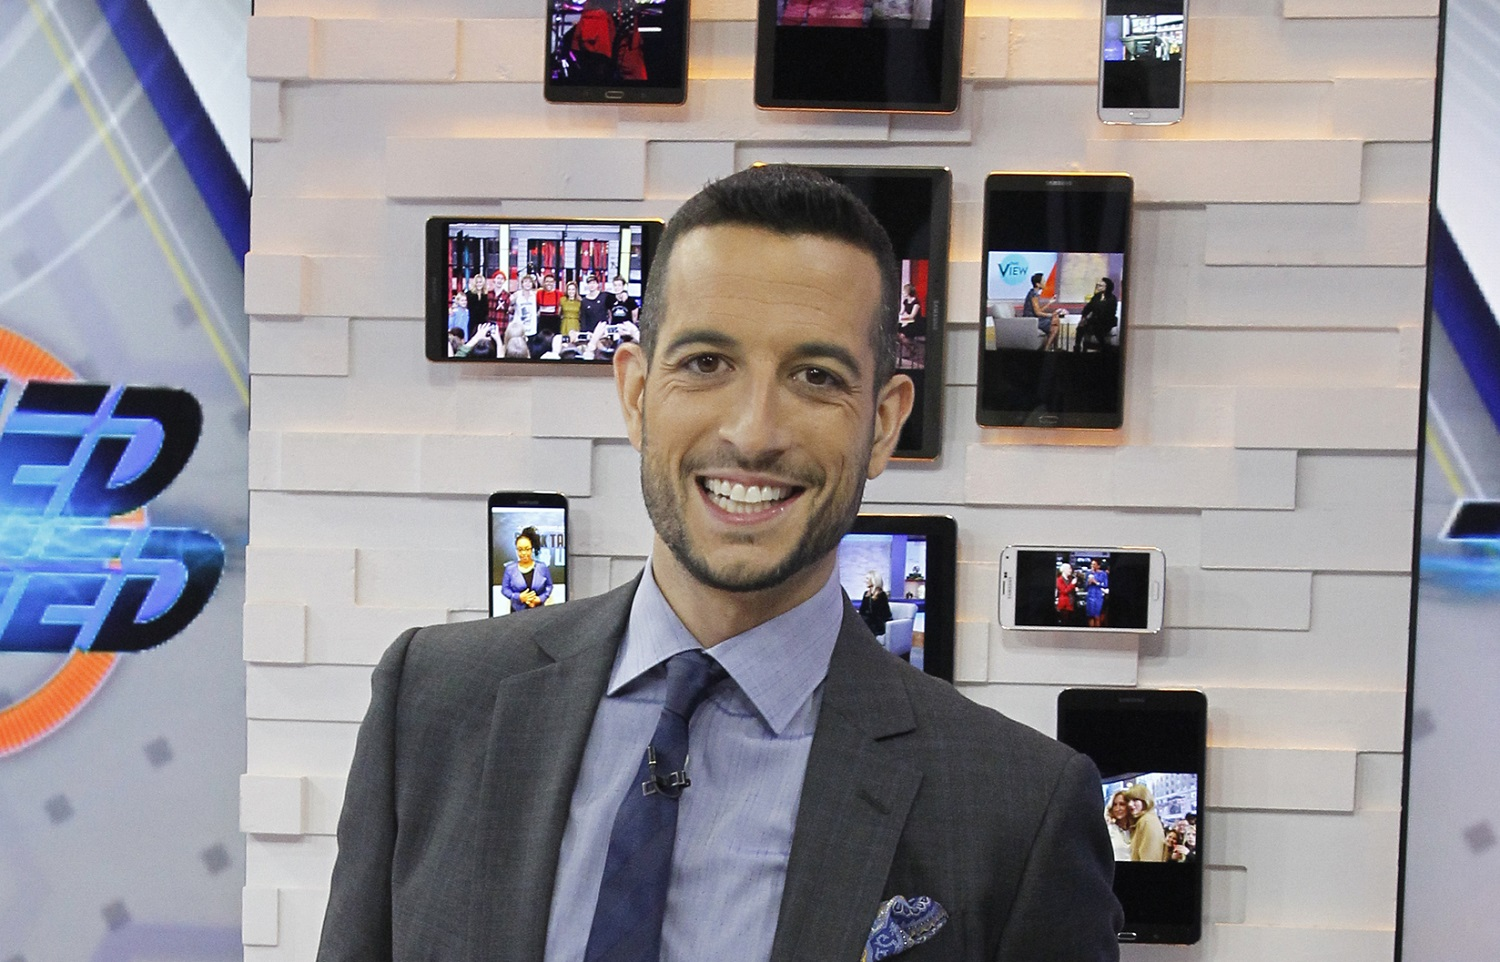 Tony Reali worked with Michael Wilbon and Tony Kornheiser on 'Pardon the Interruption' for more than a decade while also hosting 'Around the Horn' on ESPN. | Lou Rocco/Walt Disney Television via Getty Images.